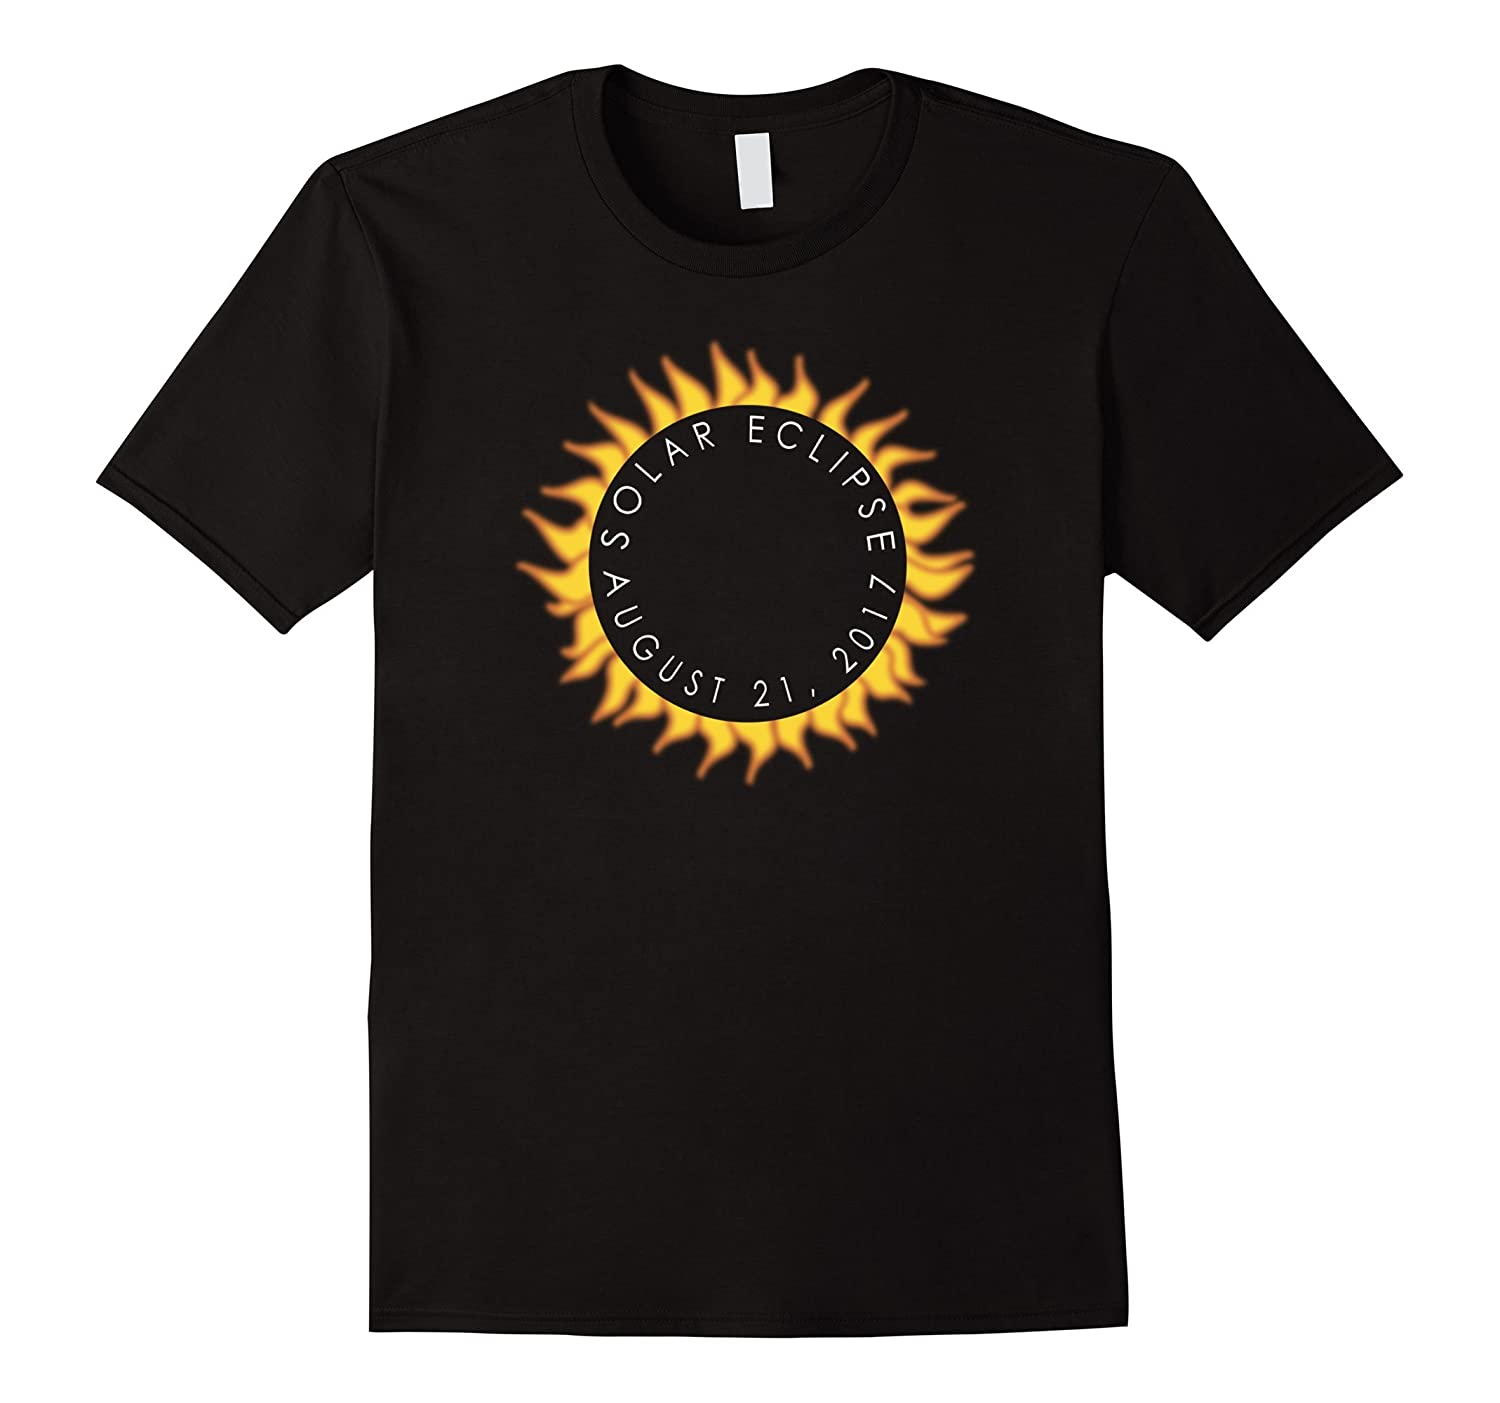 Flaming sun eclipse gift tee shirt-TD